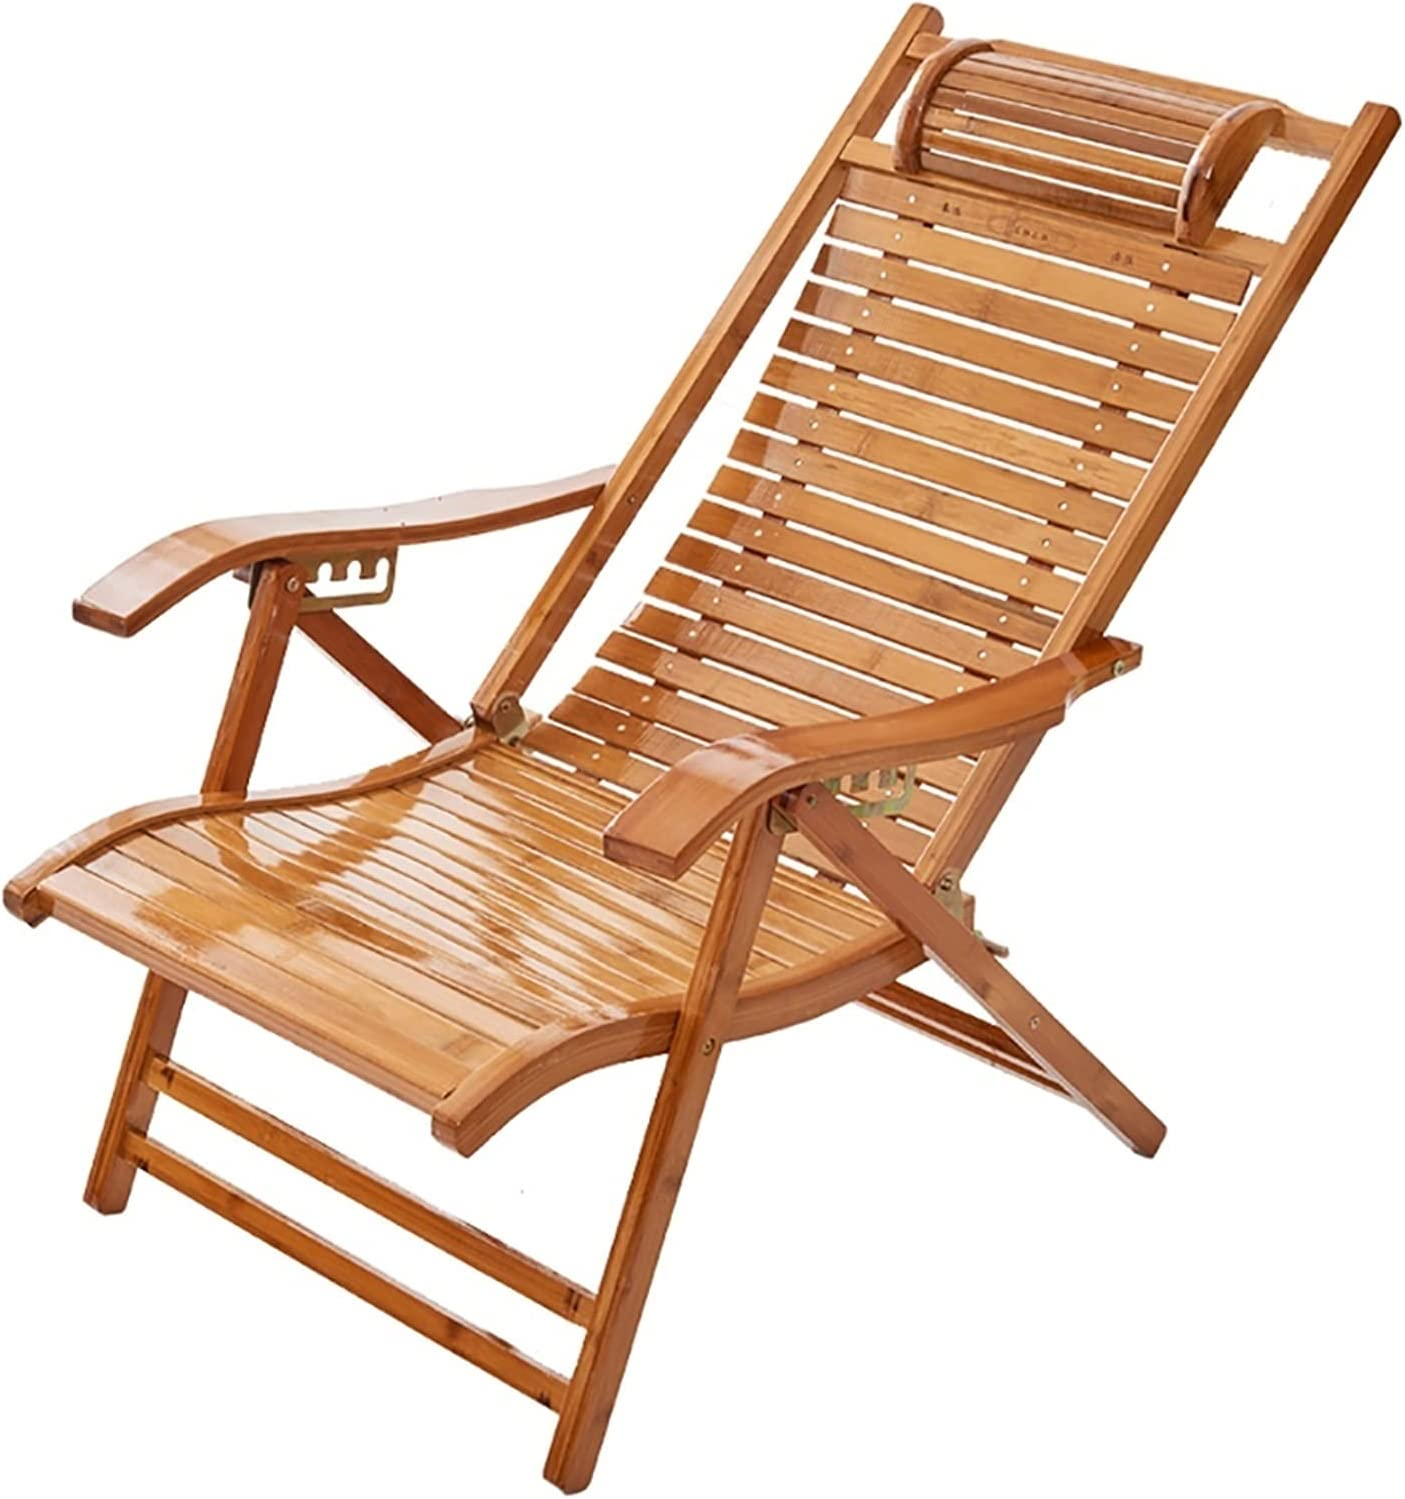 Comfortable Reclining Chair Wooden Folding with Limited time for free shipping Padded Se Max 74% OFF Chairs